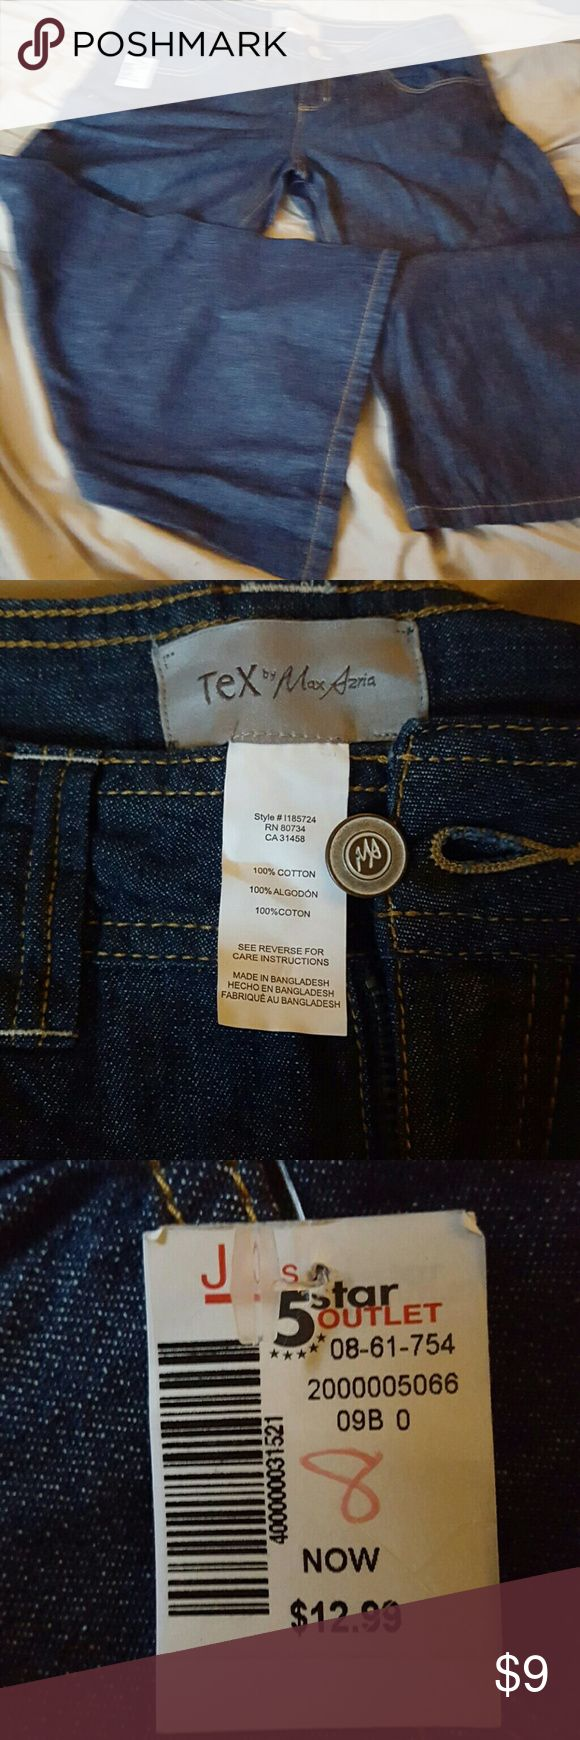 Capri Wide leg light weight jean capris, fitted waist.  Would work in winter with some boots n tights cutely.  Still has most of the tags, never worn, not sure what defect caused the outlet transfer because they look perfect to me.  Dark denim with gold stitch trim Tex by Max Azria Pants Capris